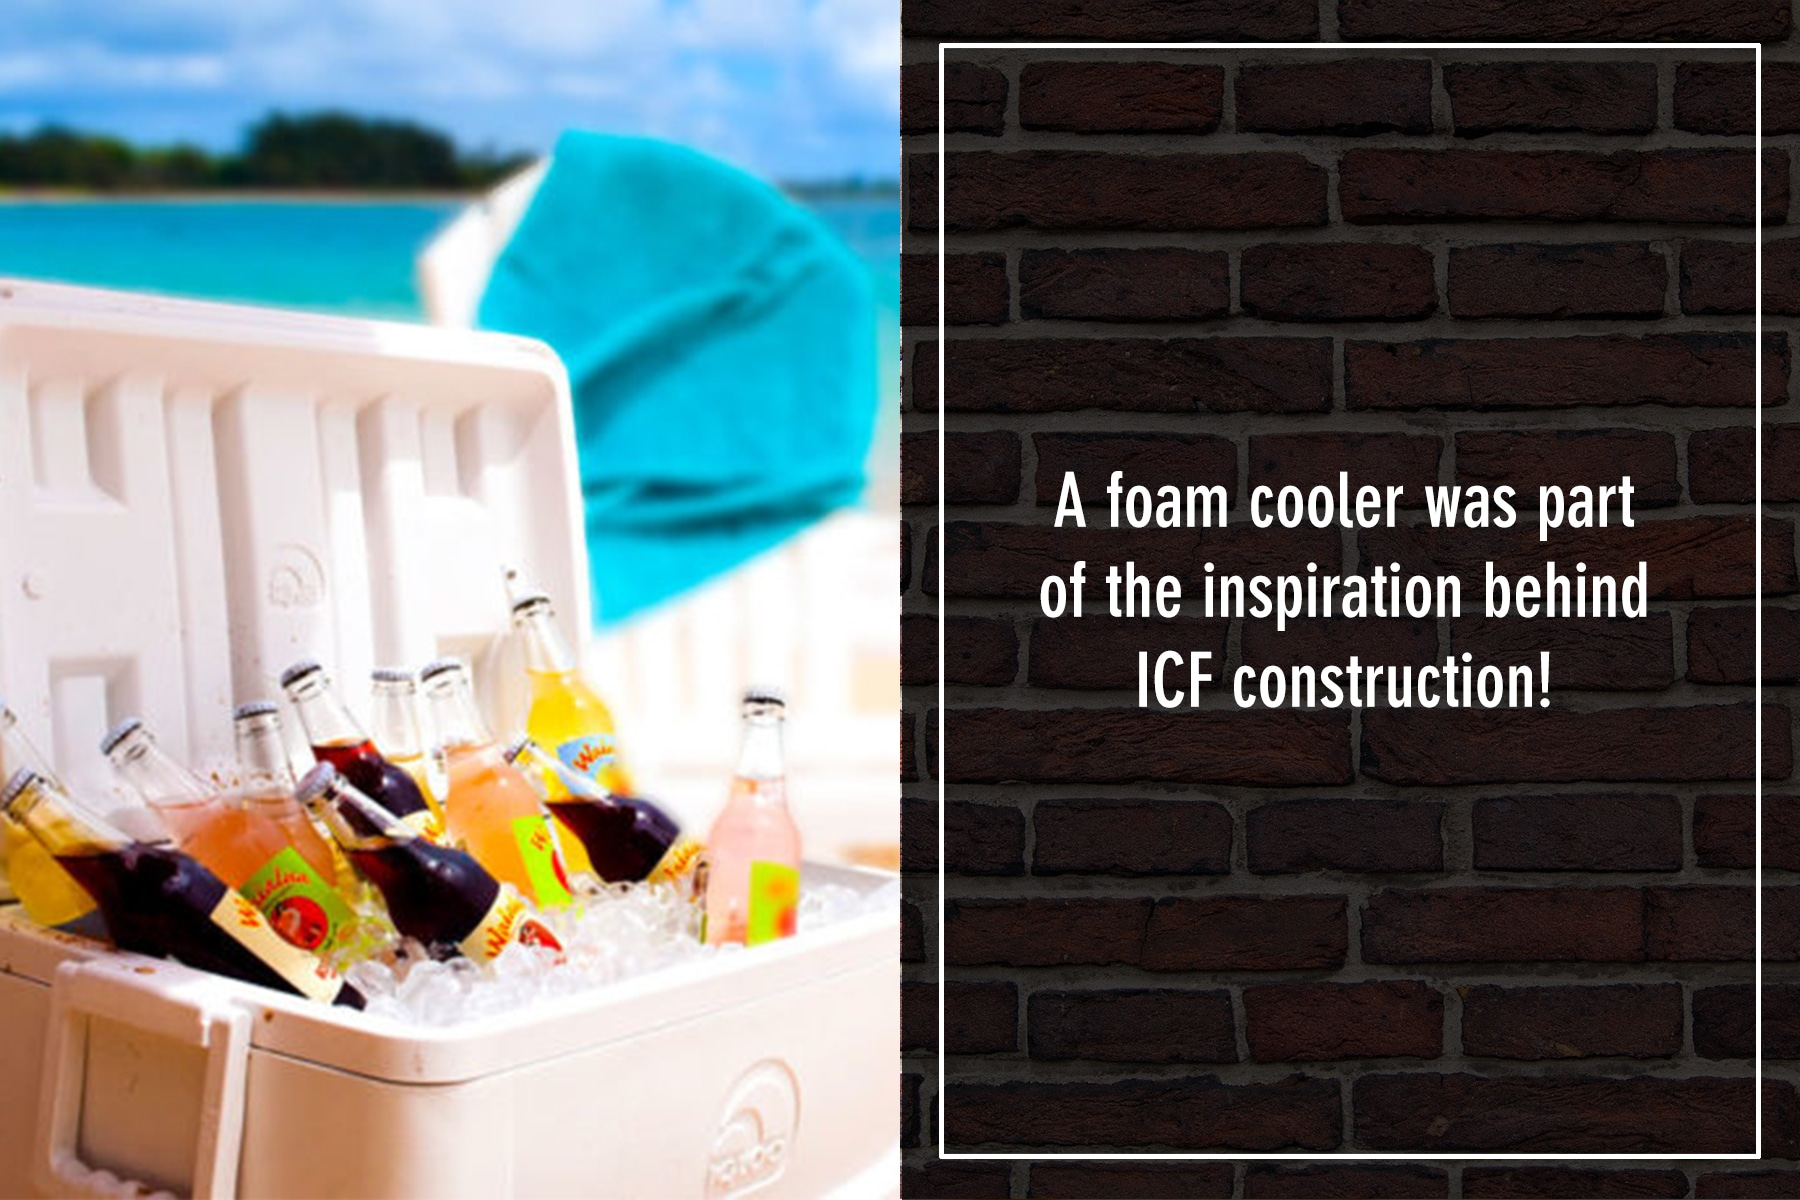 A foam cooler was part of the inspiration behind ICF construction